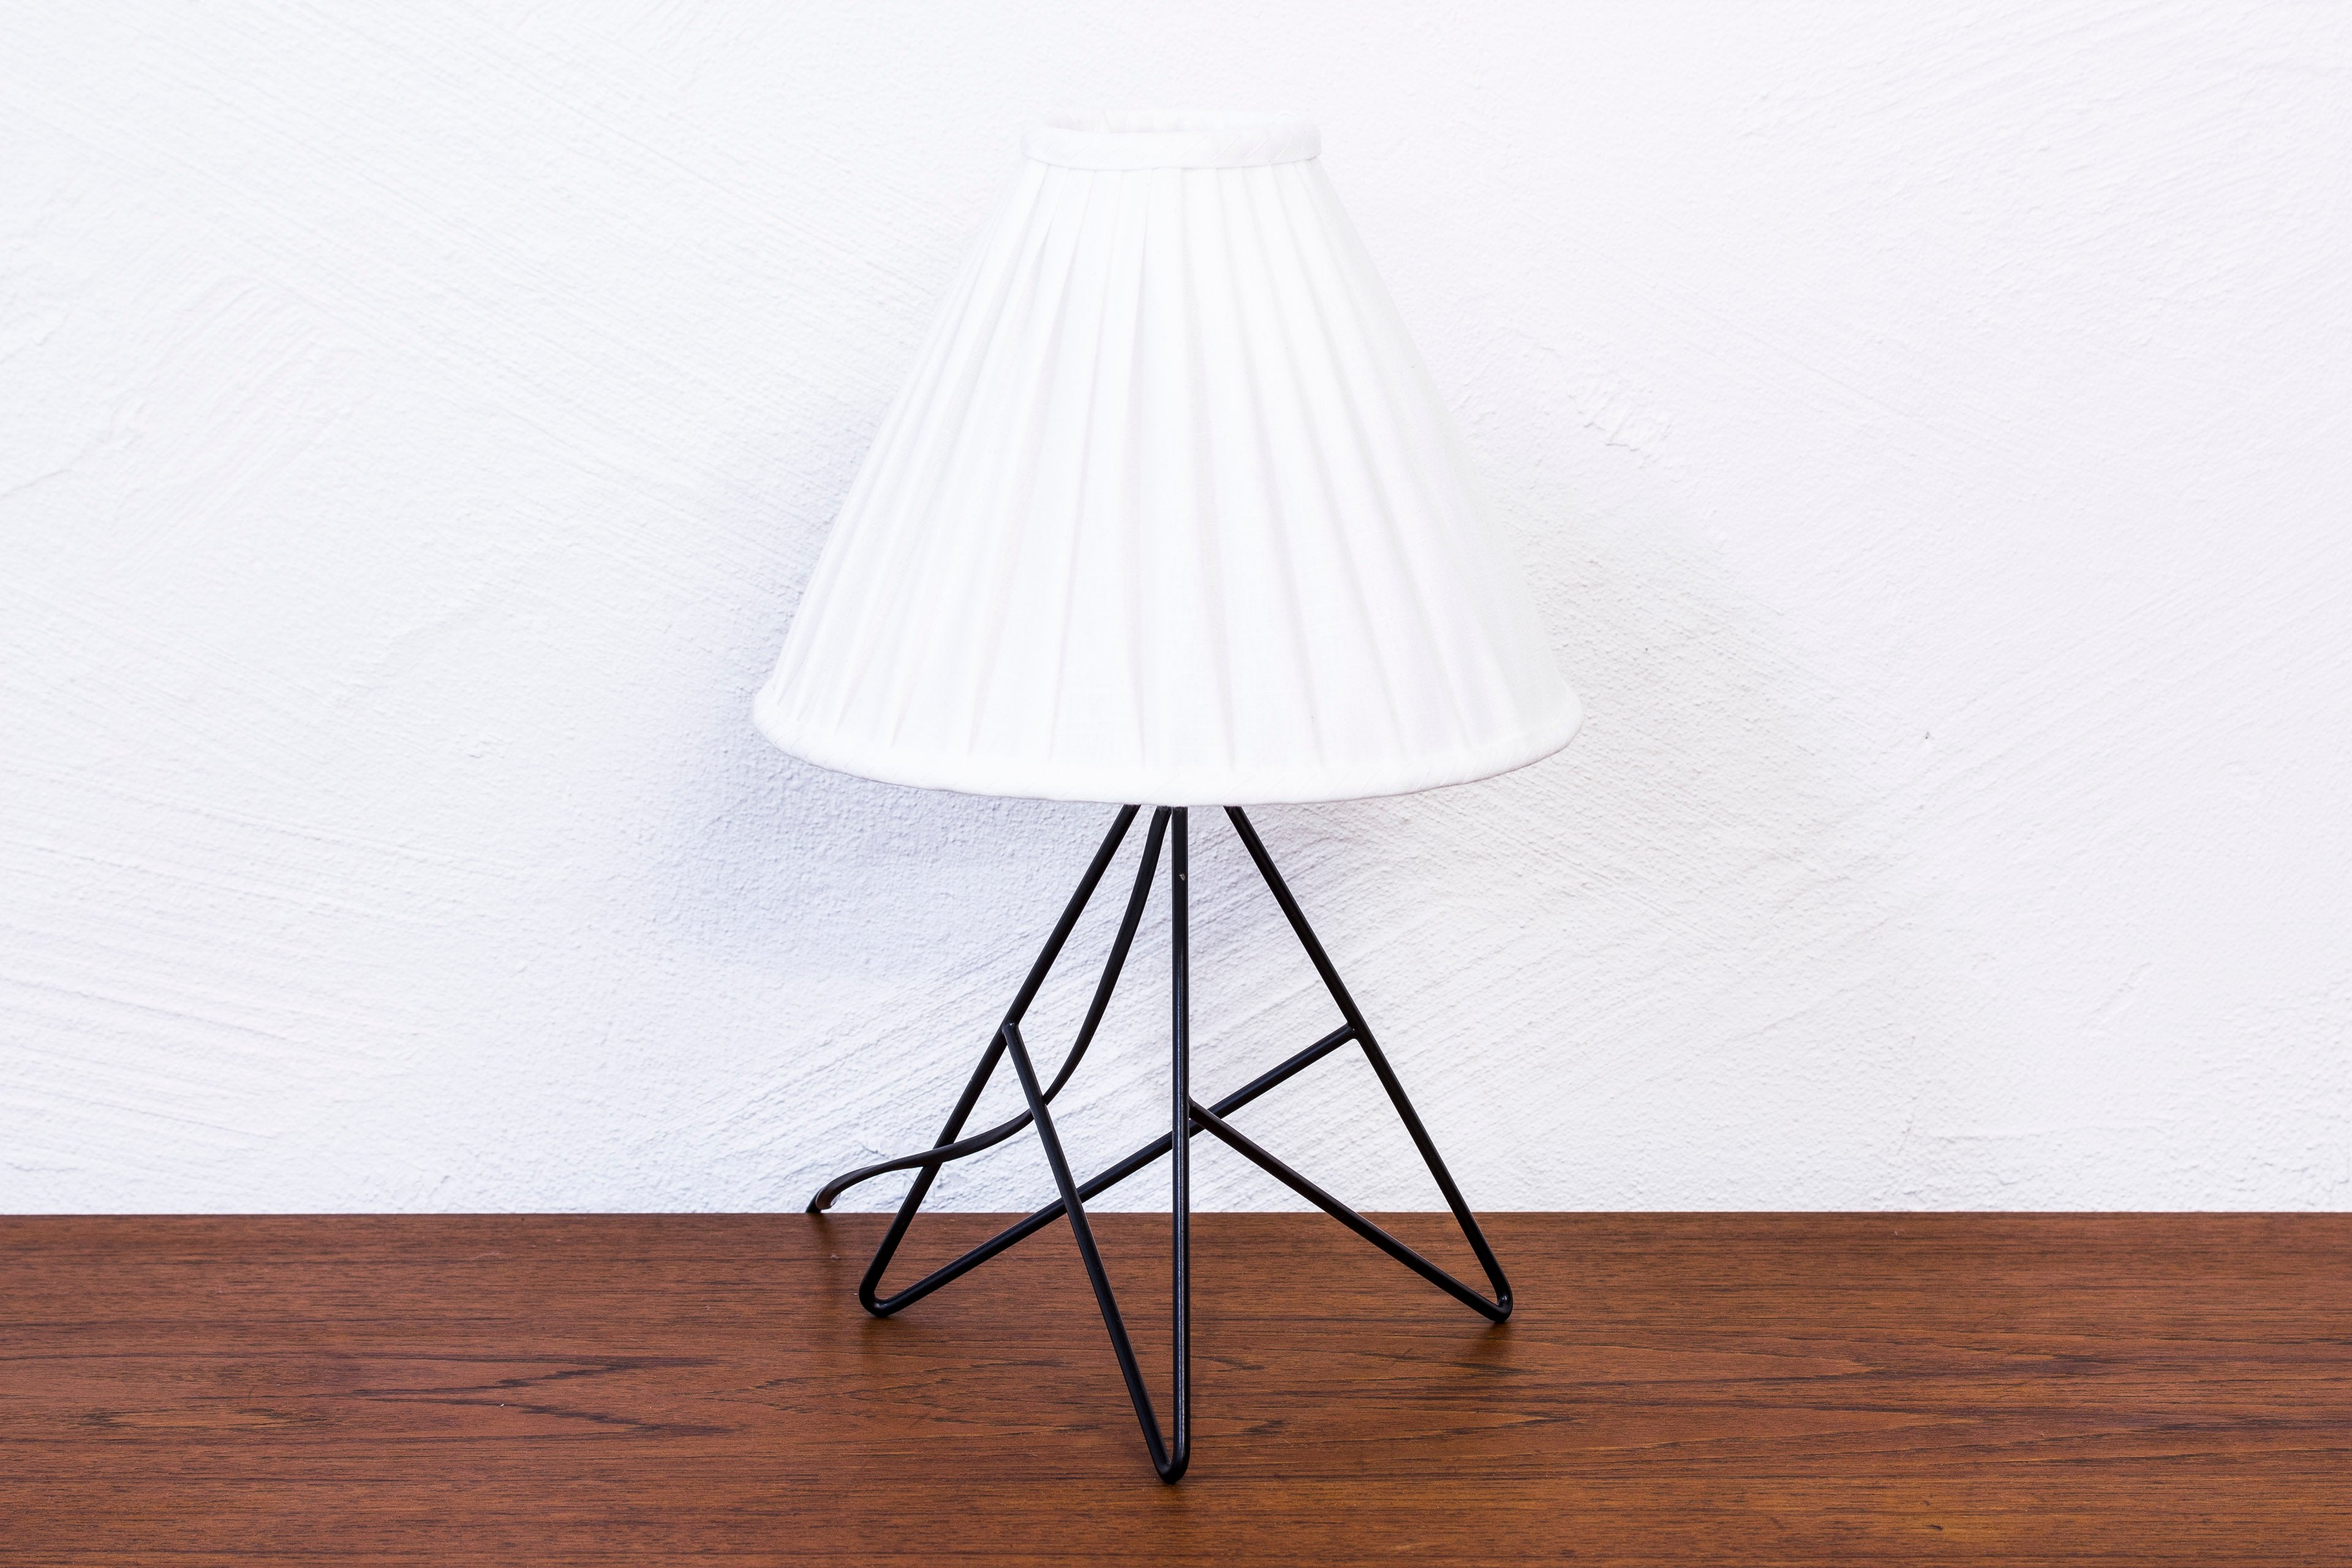 Rare 1950s table lamp by Nils Strinning